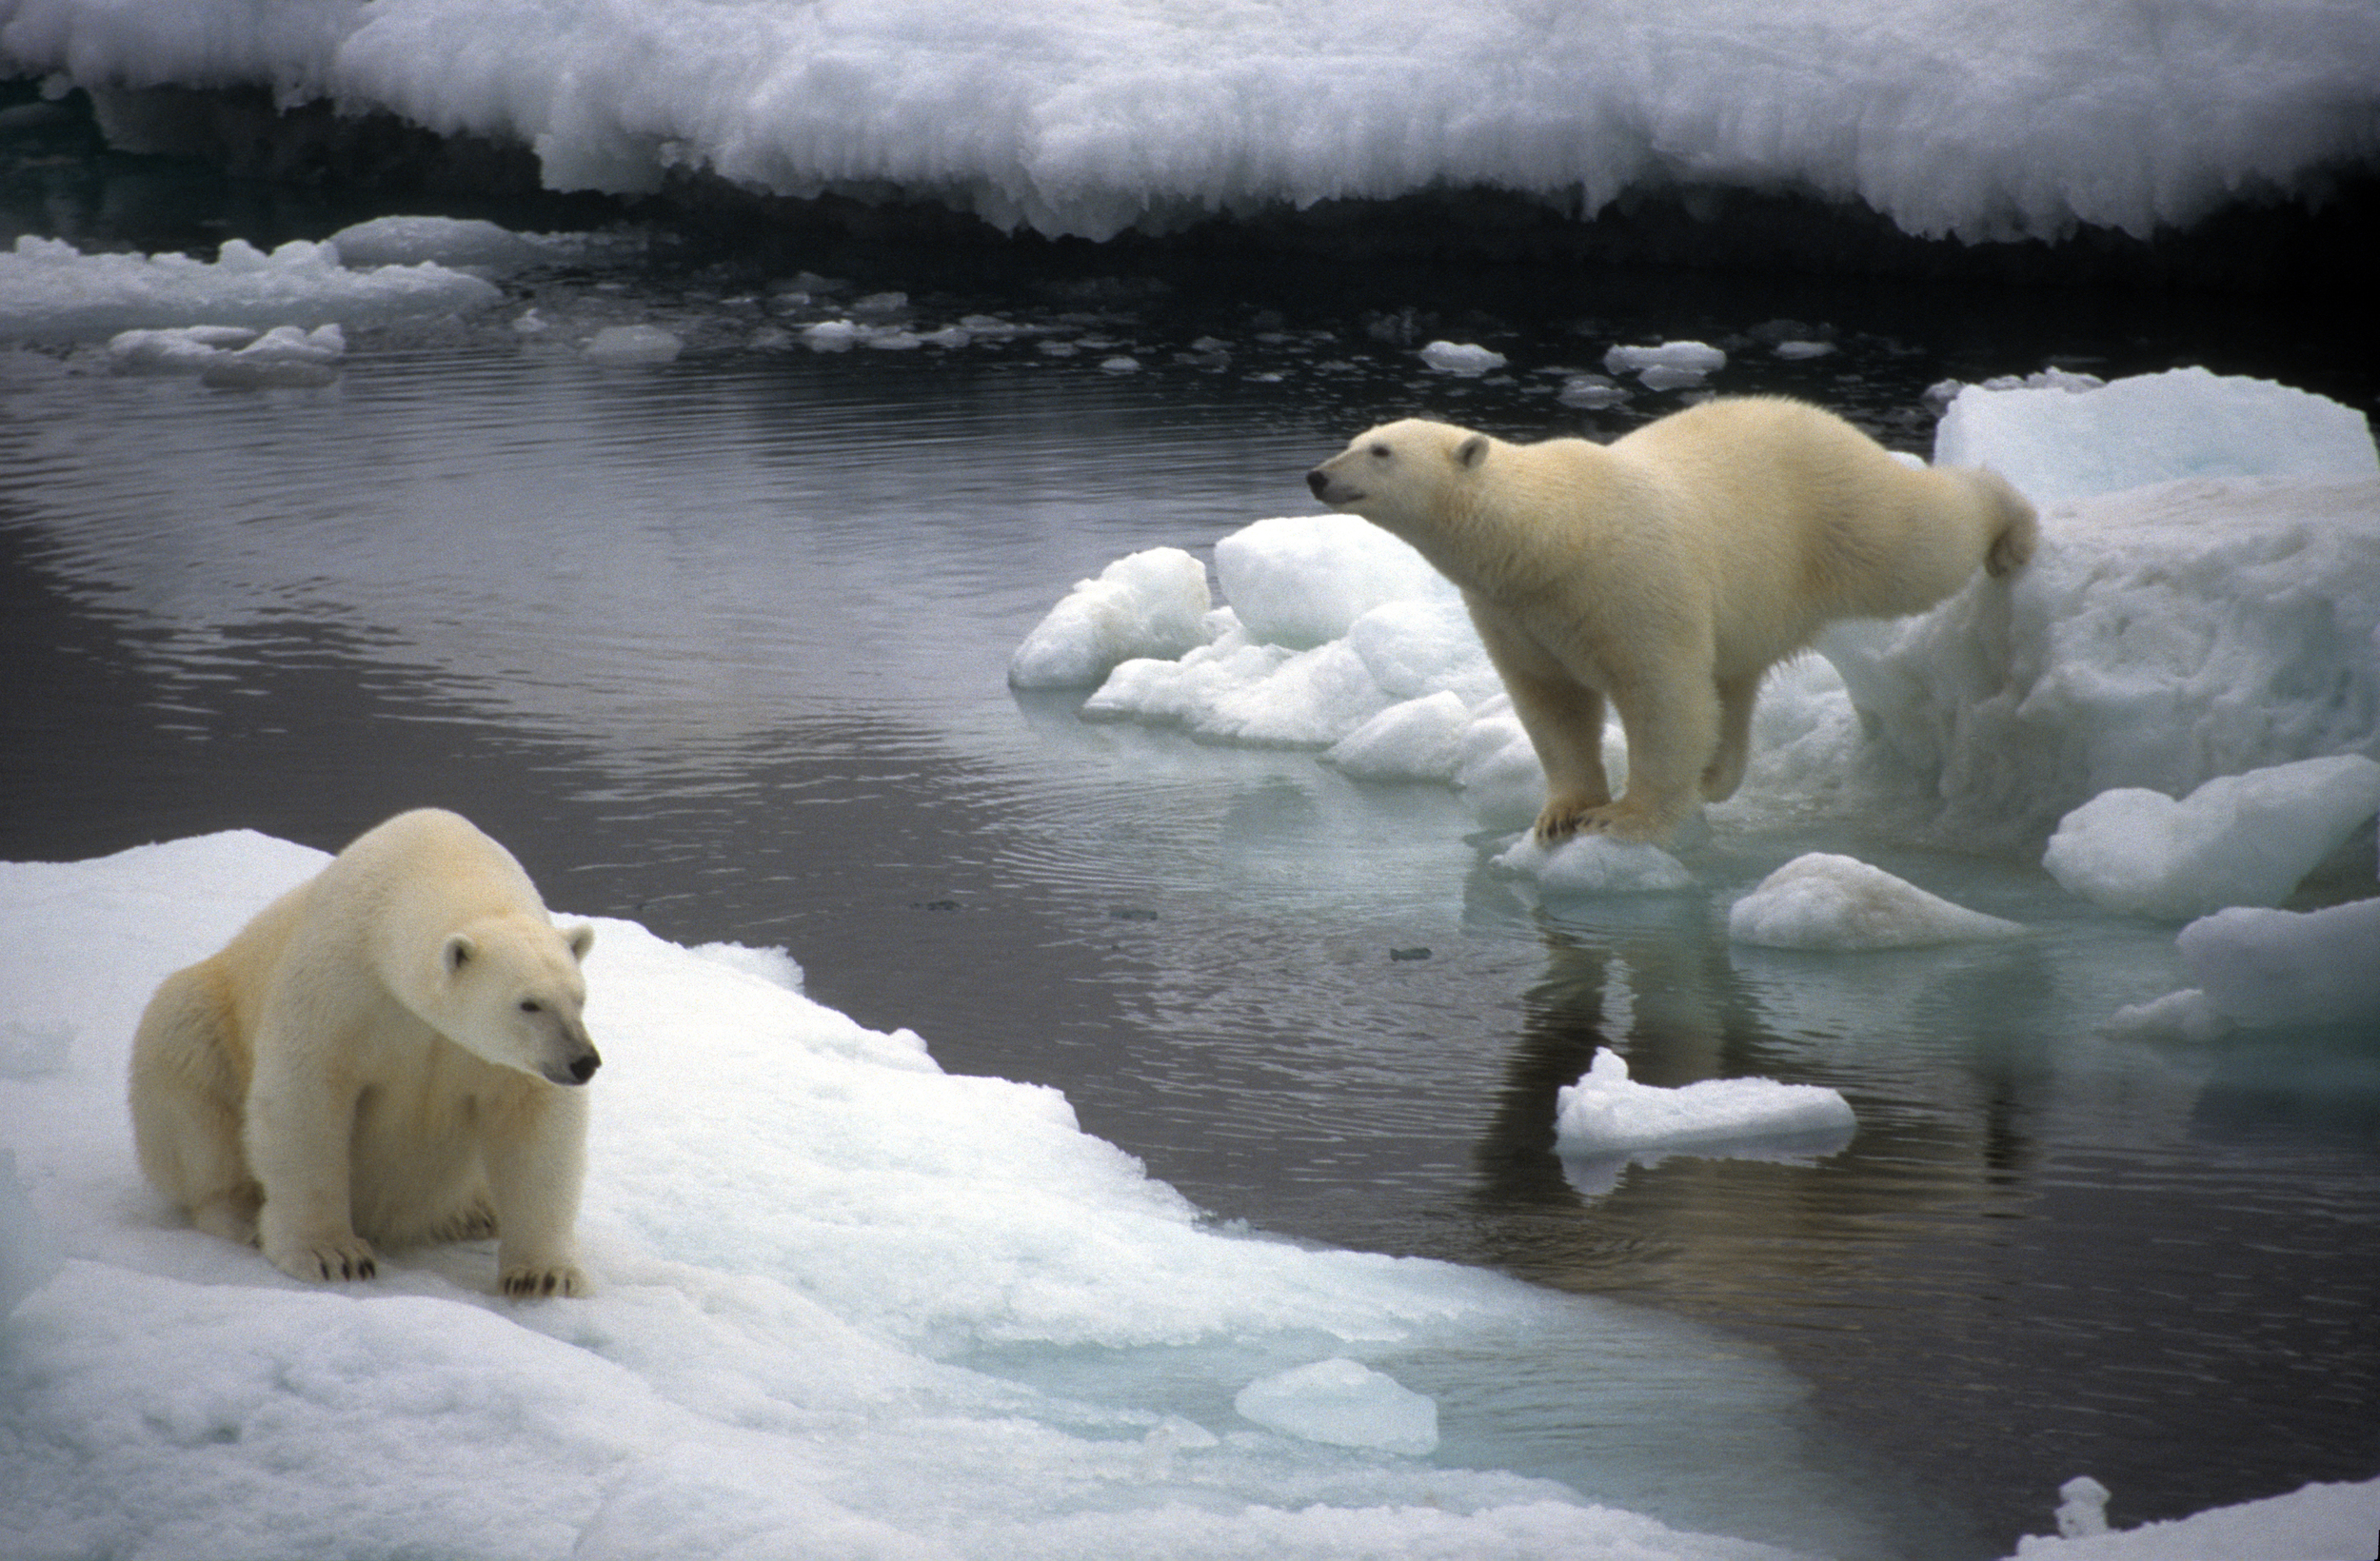 two polar bears on ice floes